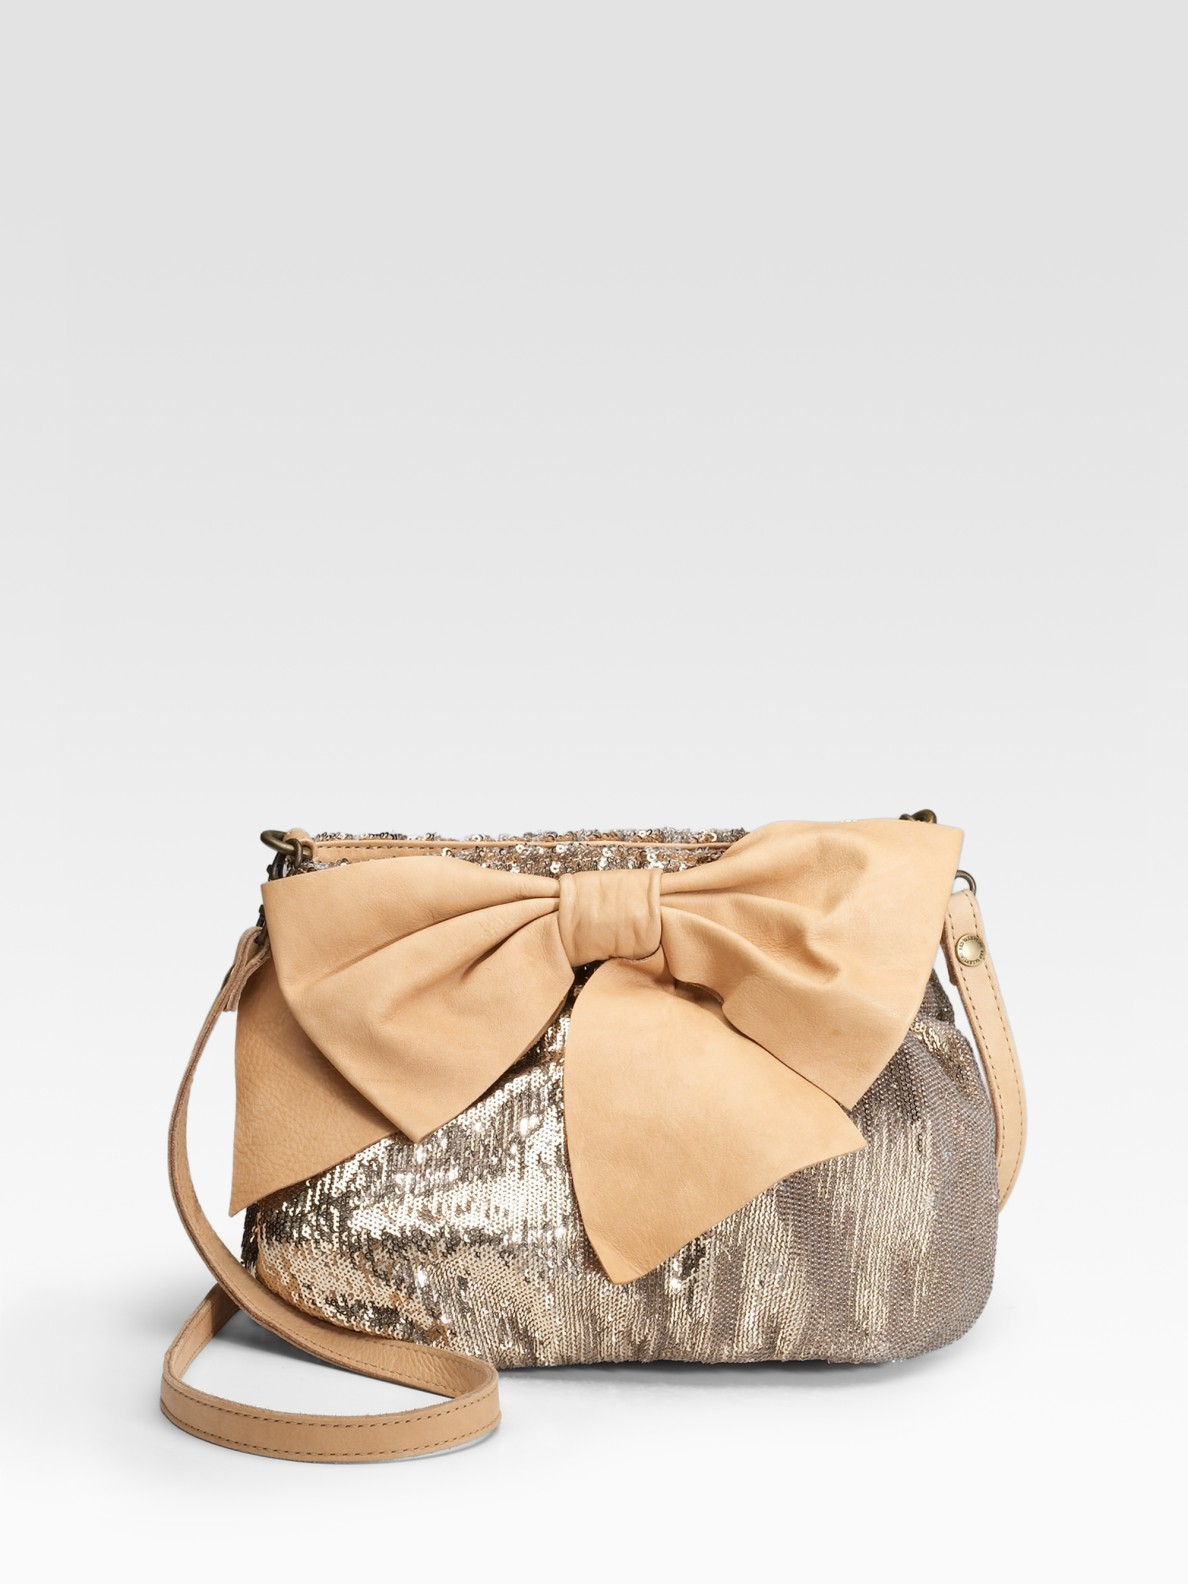 Red Valentino Sequin Bow Crossbody Shoulder Bag In Silver